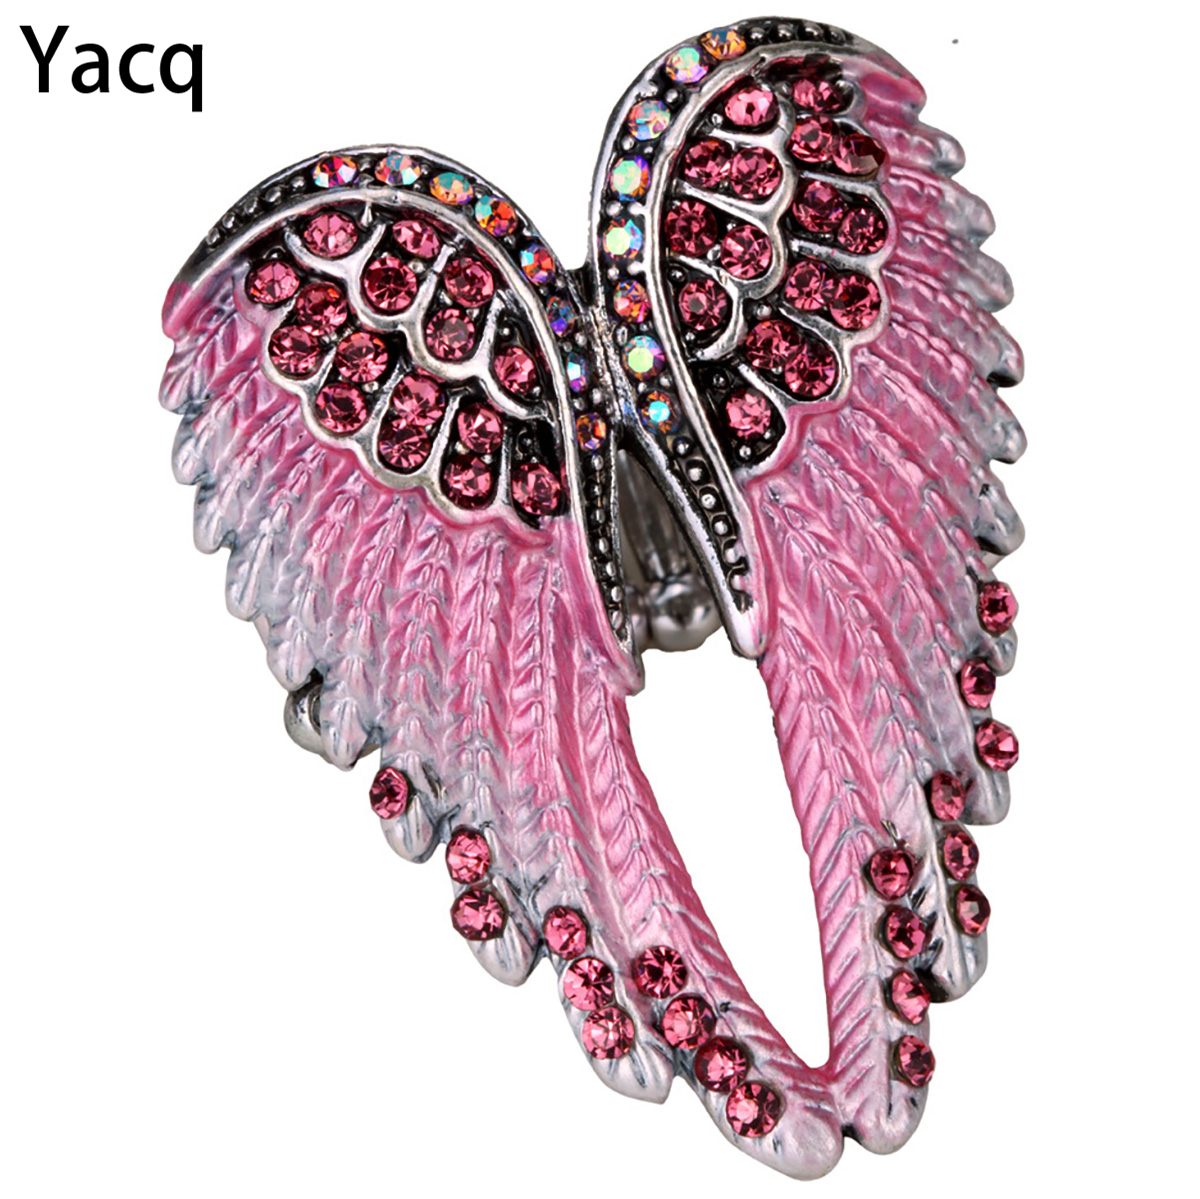 YACQ Angel Wings Stretch Ring Scarf Clasp Buckle Women Biker Bling Crystal Զարդեր նվերներ